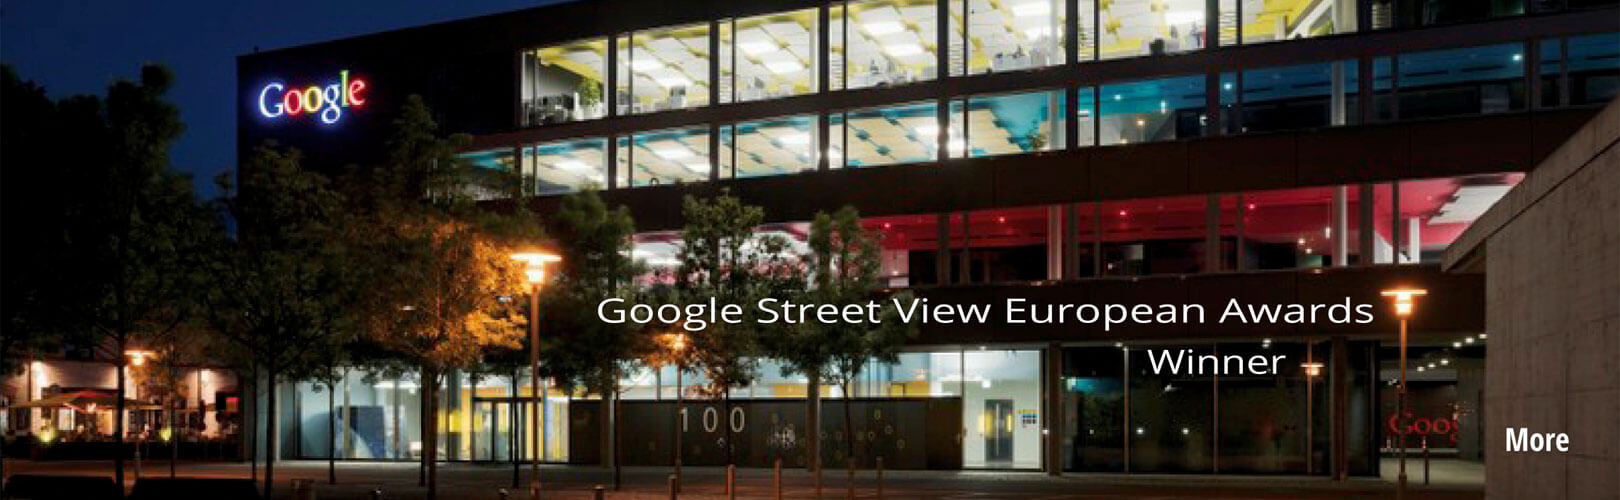 Google-European-Award-Winner-V4-1620x500